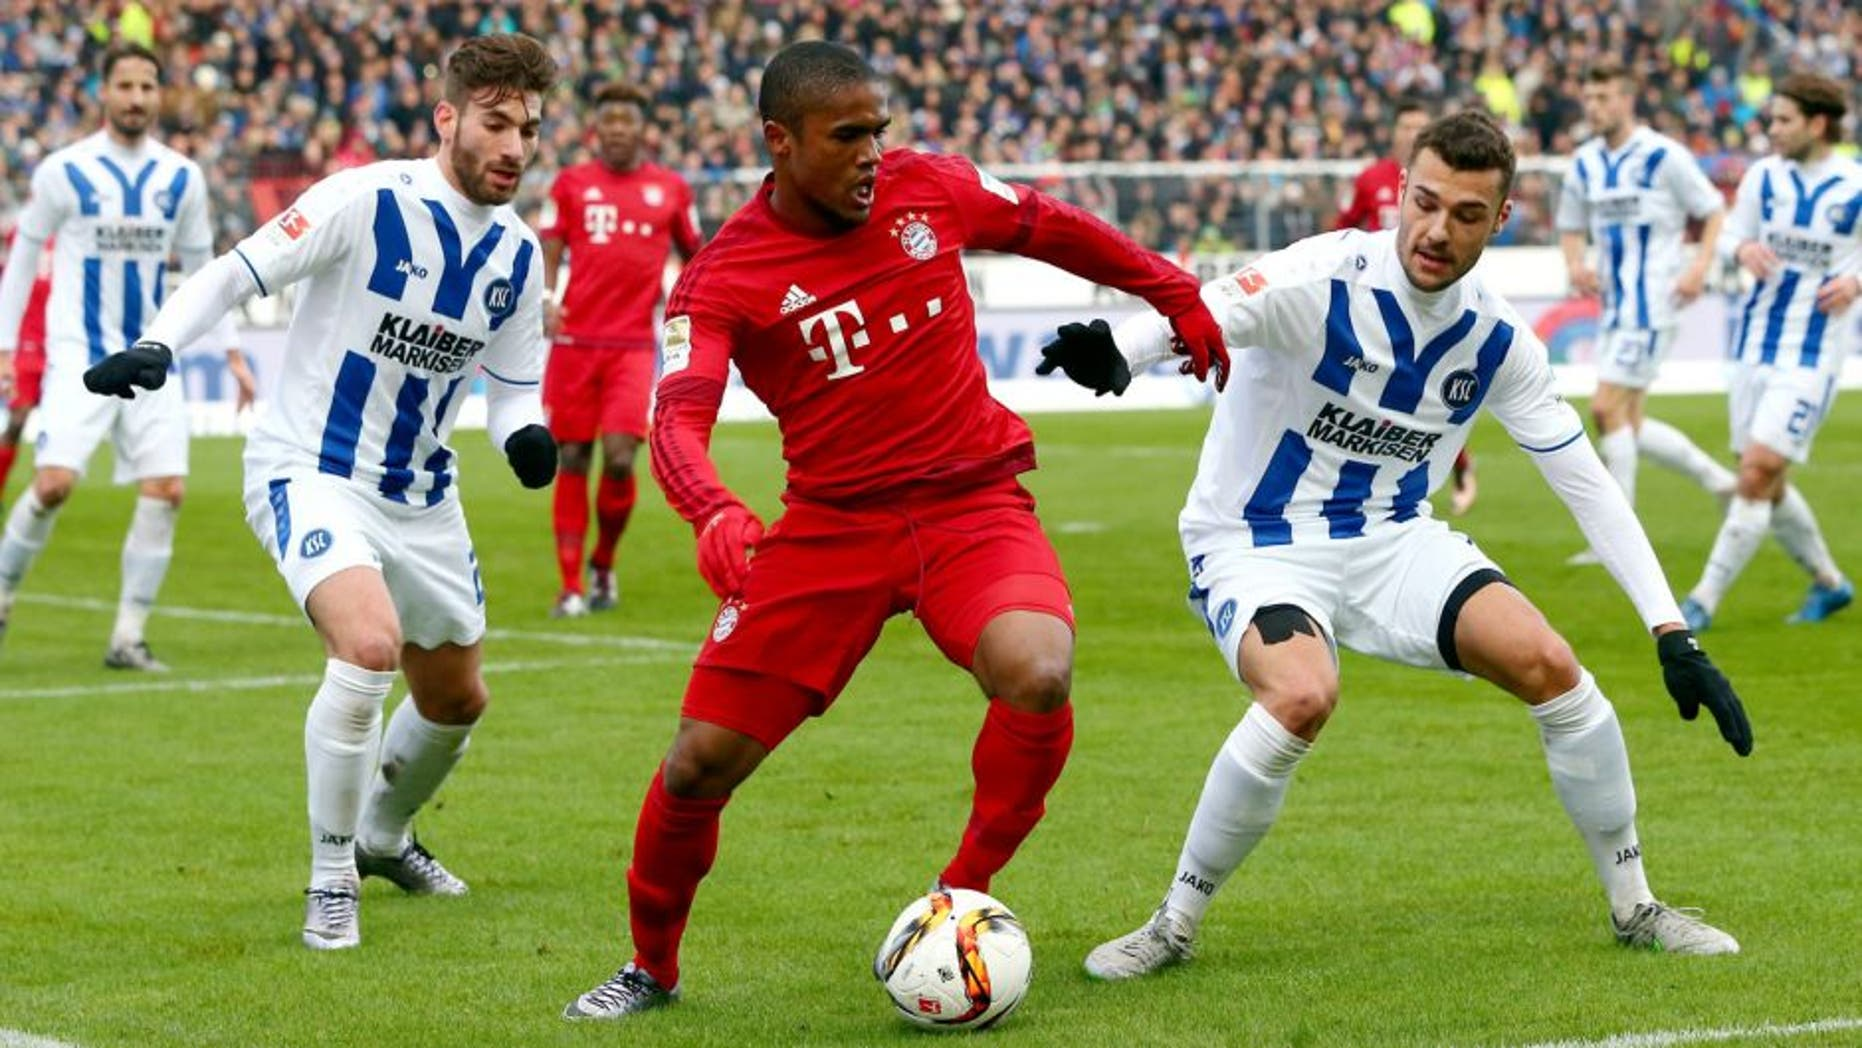 KARLSRUHE, GERMANY - JANUARY 16: Douglas Costa (C) of Muenchen is challenged by Enrico Valentini (L) and Manuel Gulde of Karlsruhe during a friendly match between Karlsruher SC and FC Bayern Muenchen at Wildpark Stadium on January 16, 2016 in Karlsruhe, Germany. (Photo by Alex Grimm/Bongarts/Getty Images)